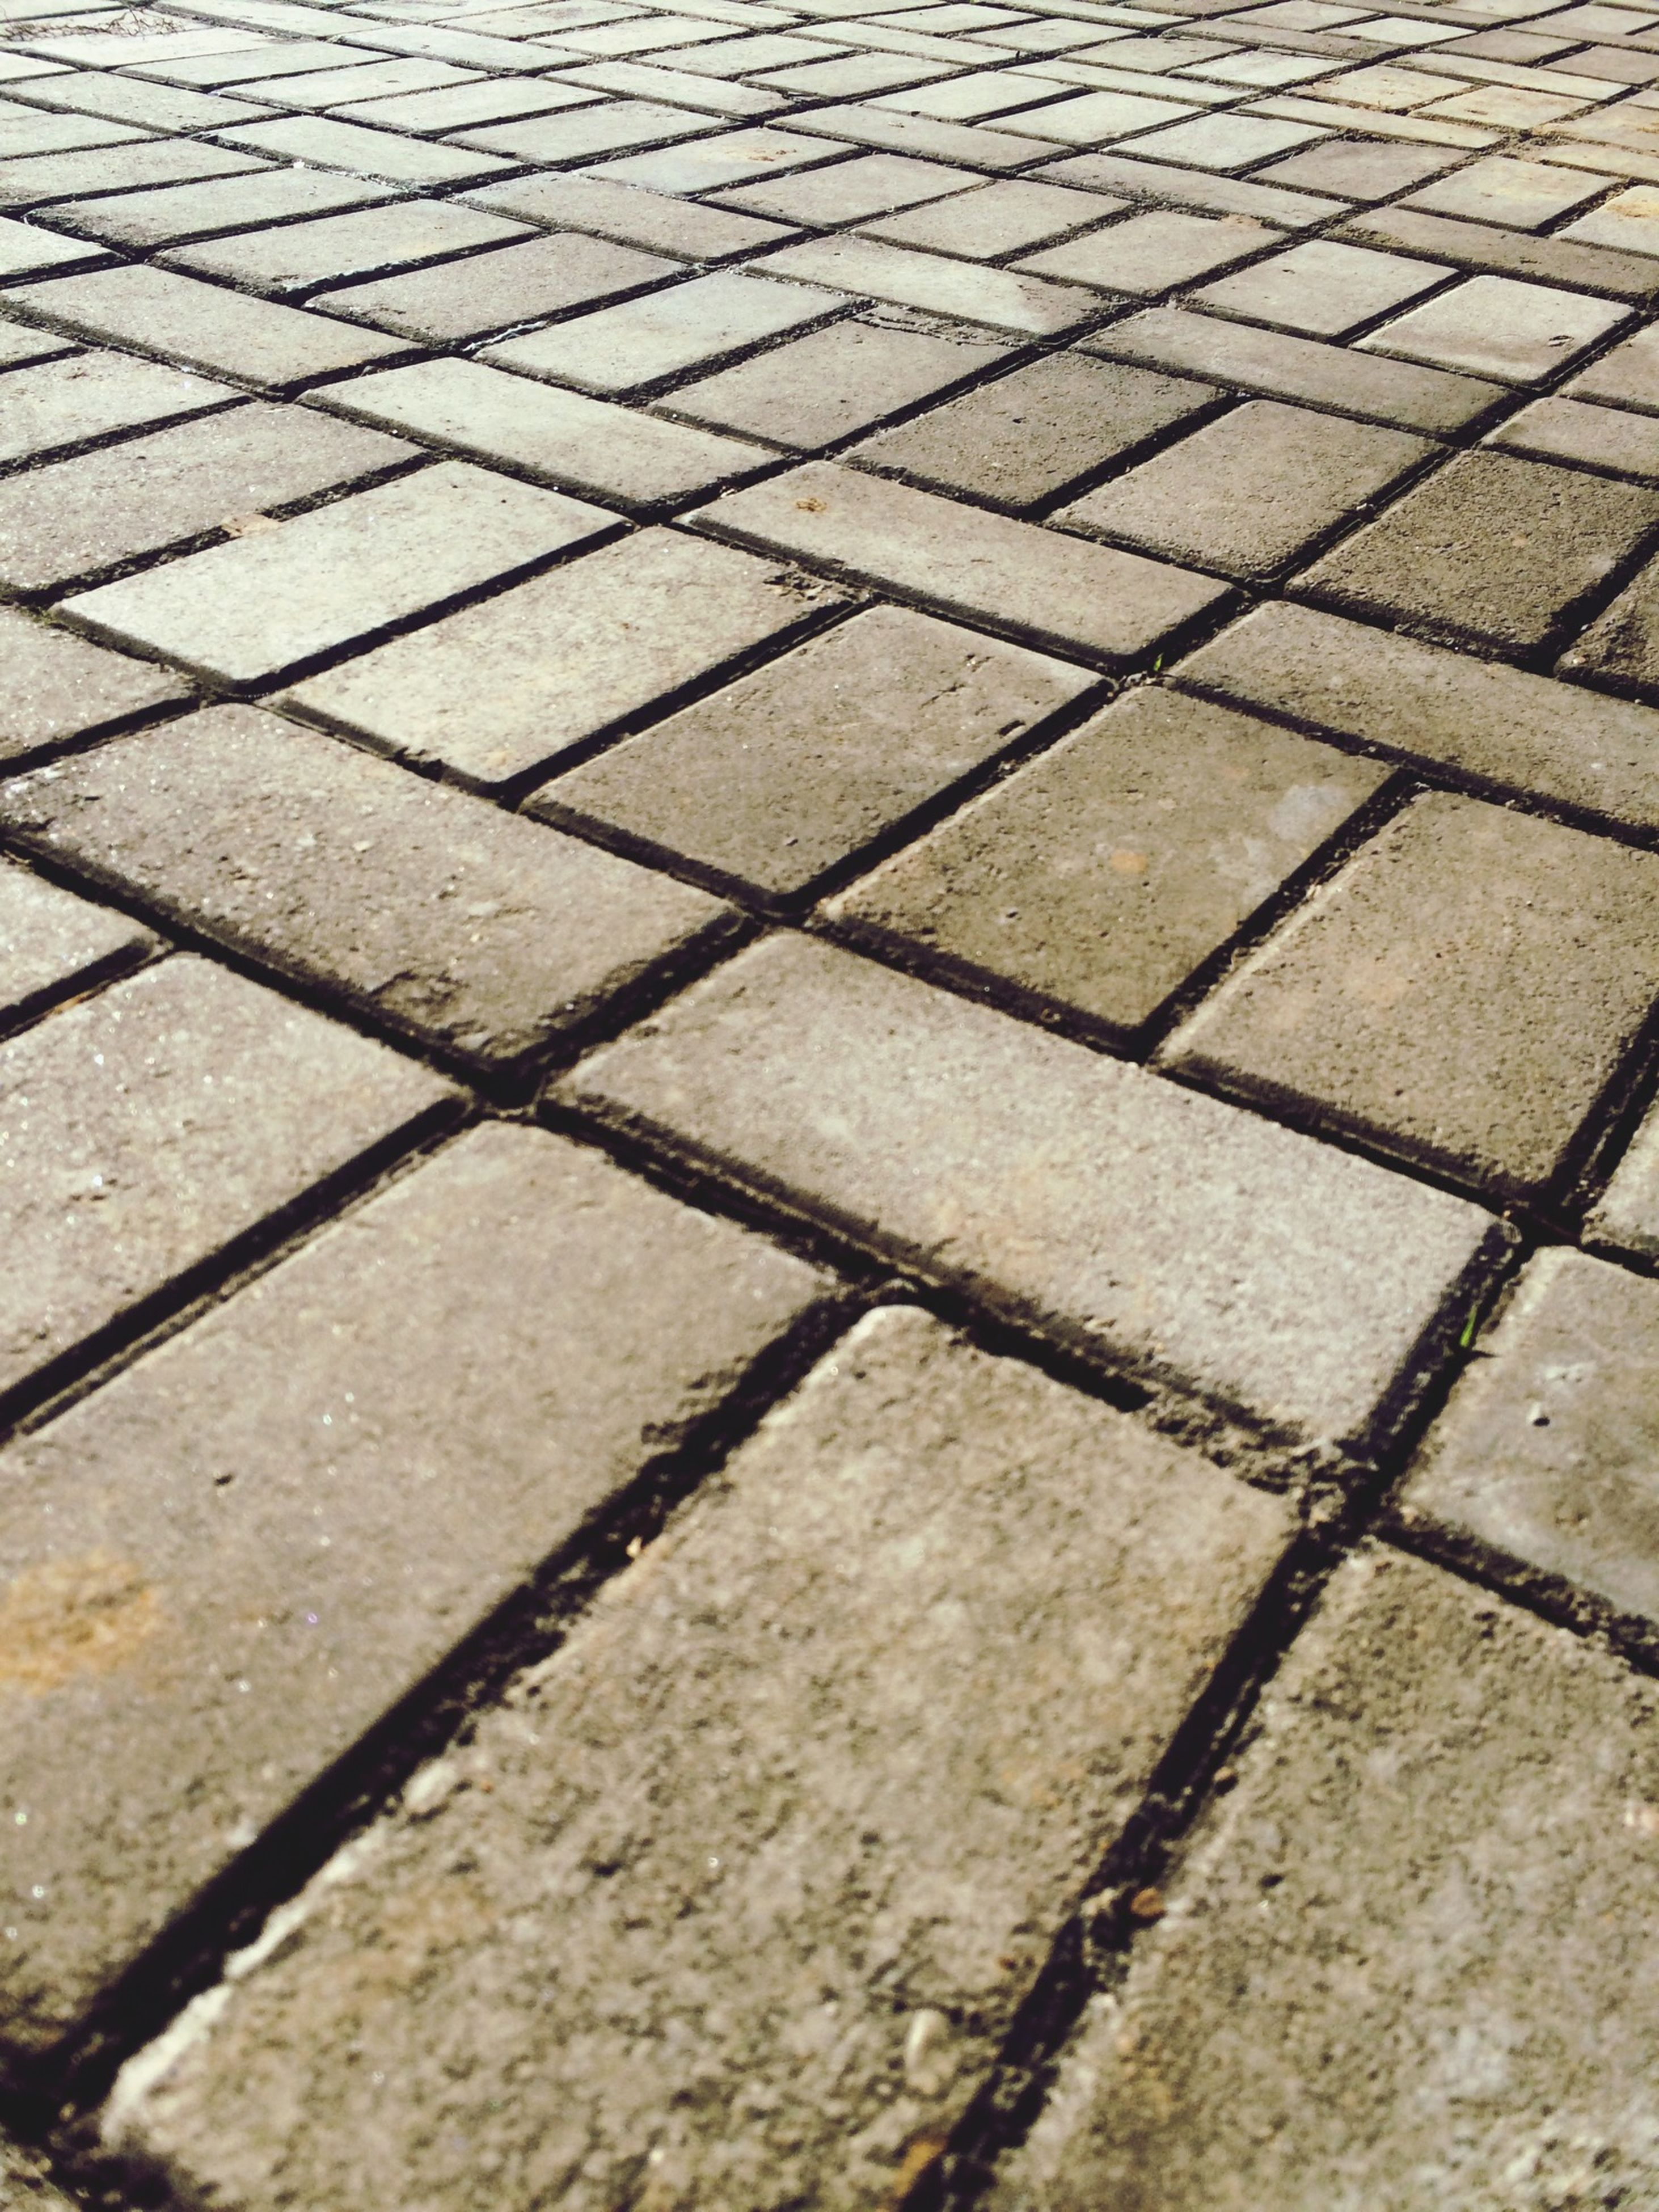 high angle view, full frame, street, pattern, backgrounds, paving stone, cobblestone, textured, footpath, sunlight, shadow, sidewalk, asphalt, day, outdoors, no people, road, road marking, pavement, close-up